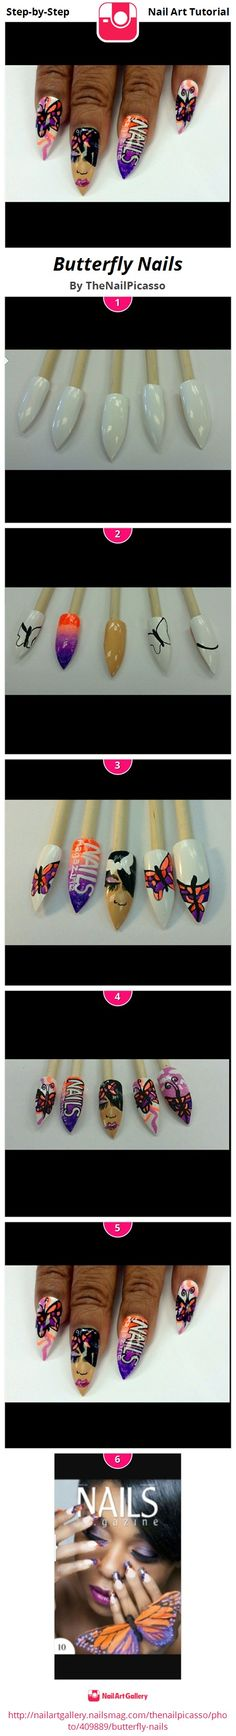 Butterfly Nails - Nail Art Gallery Step-by-Step Tutorial Photos